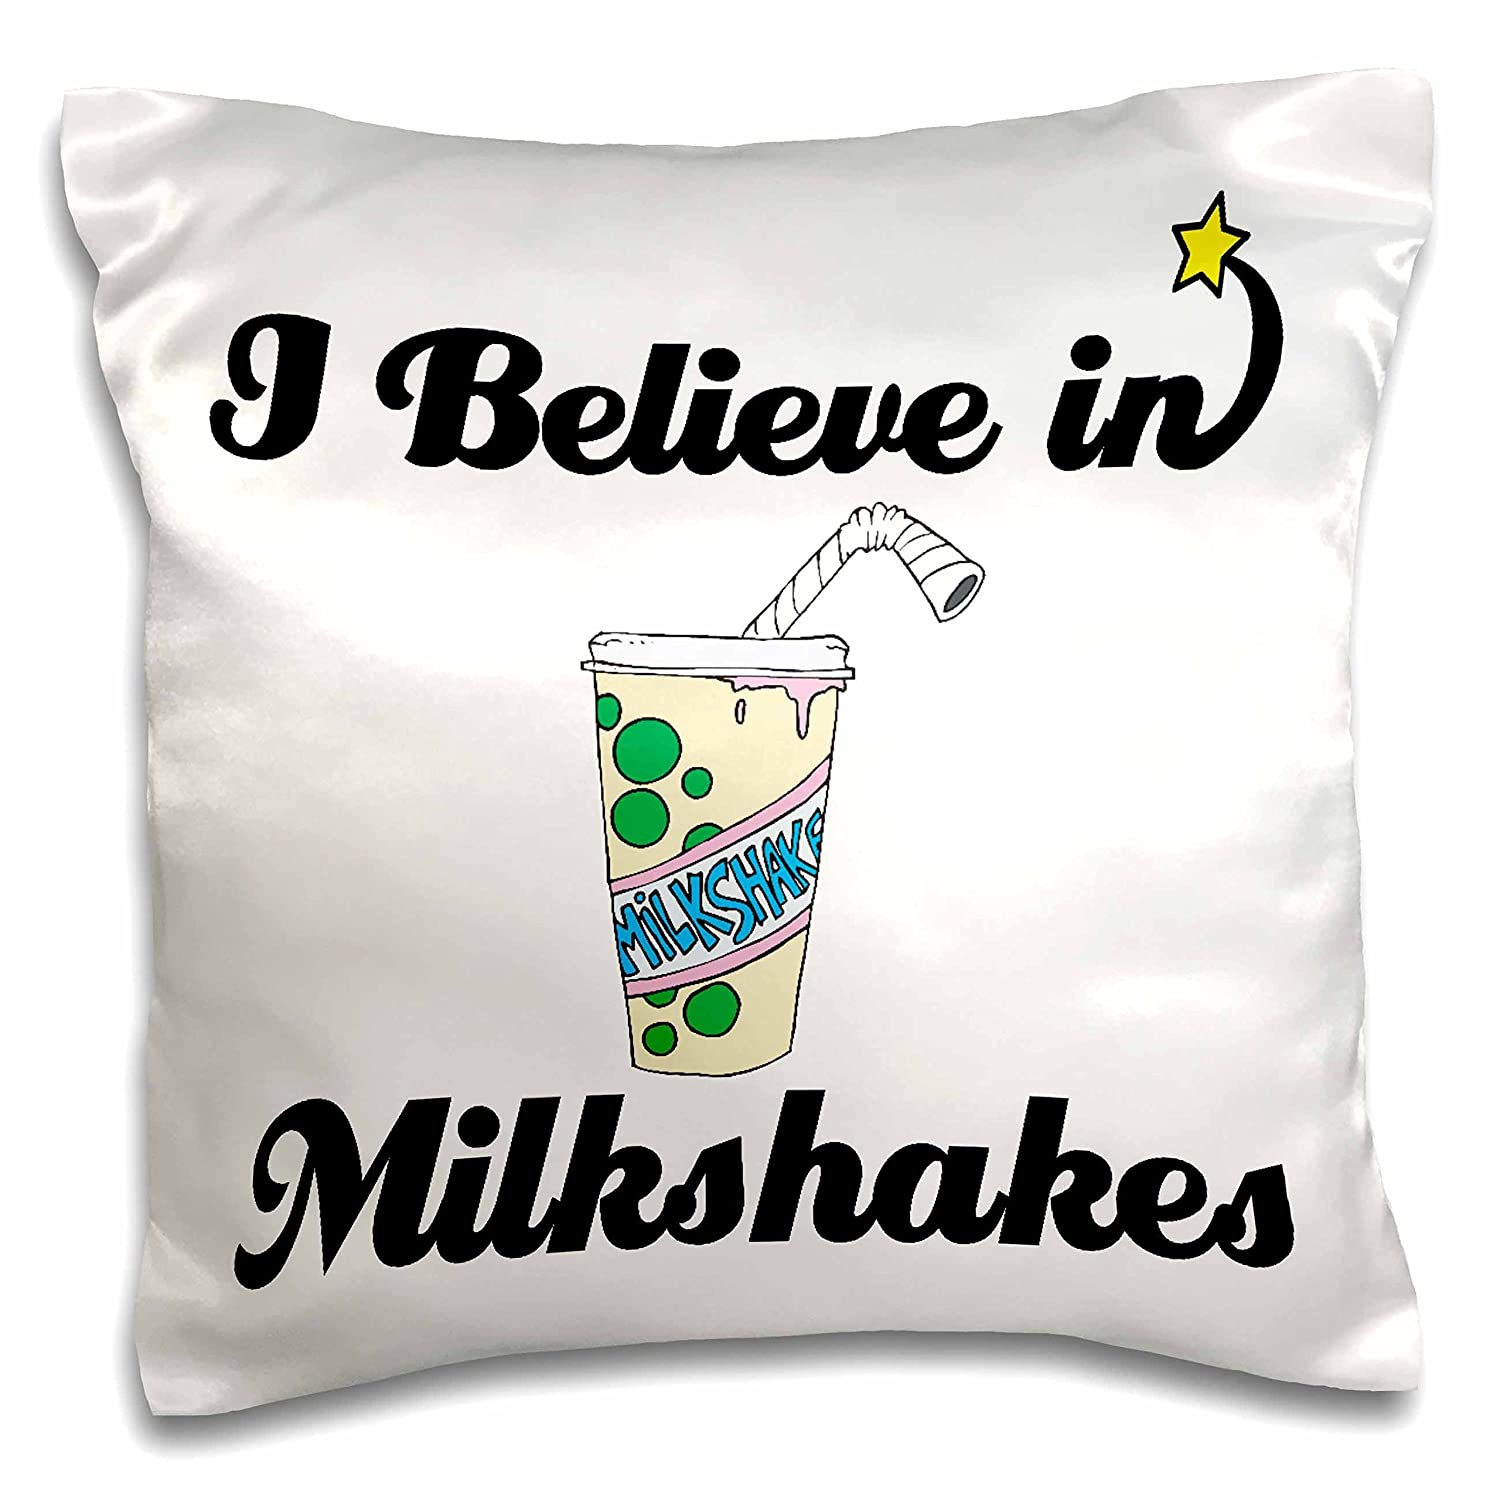 Dooni Designs I Believe In – I Believe In Milkshakes – 枕ケース 16x16 inch Pillow Case pc_105353_1 16x16 inch Pillow Case  B016KAVBTM